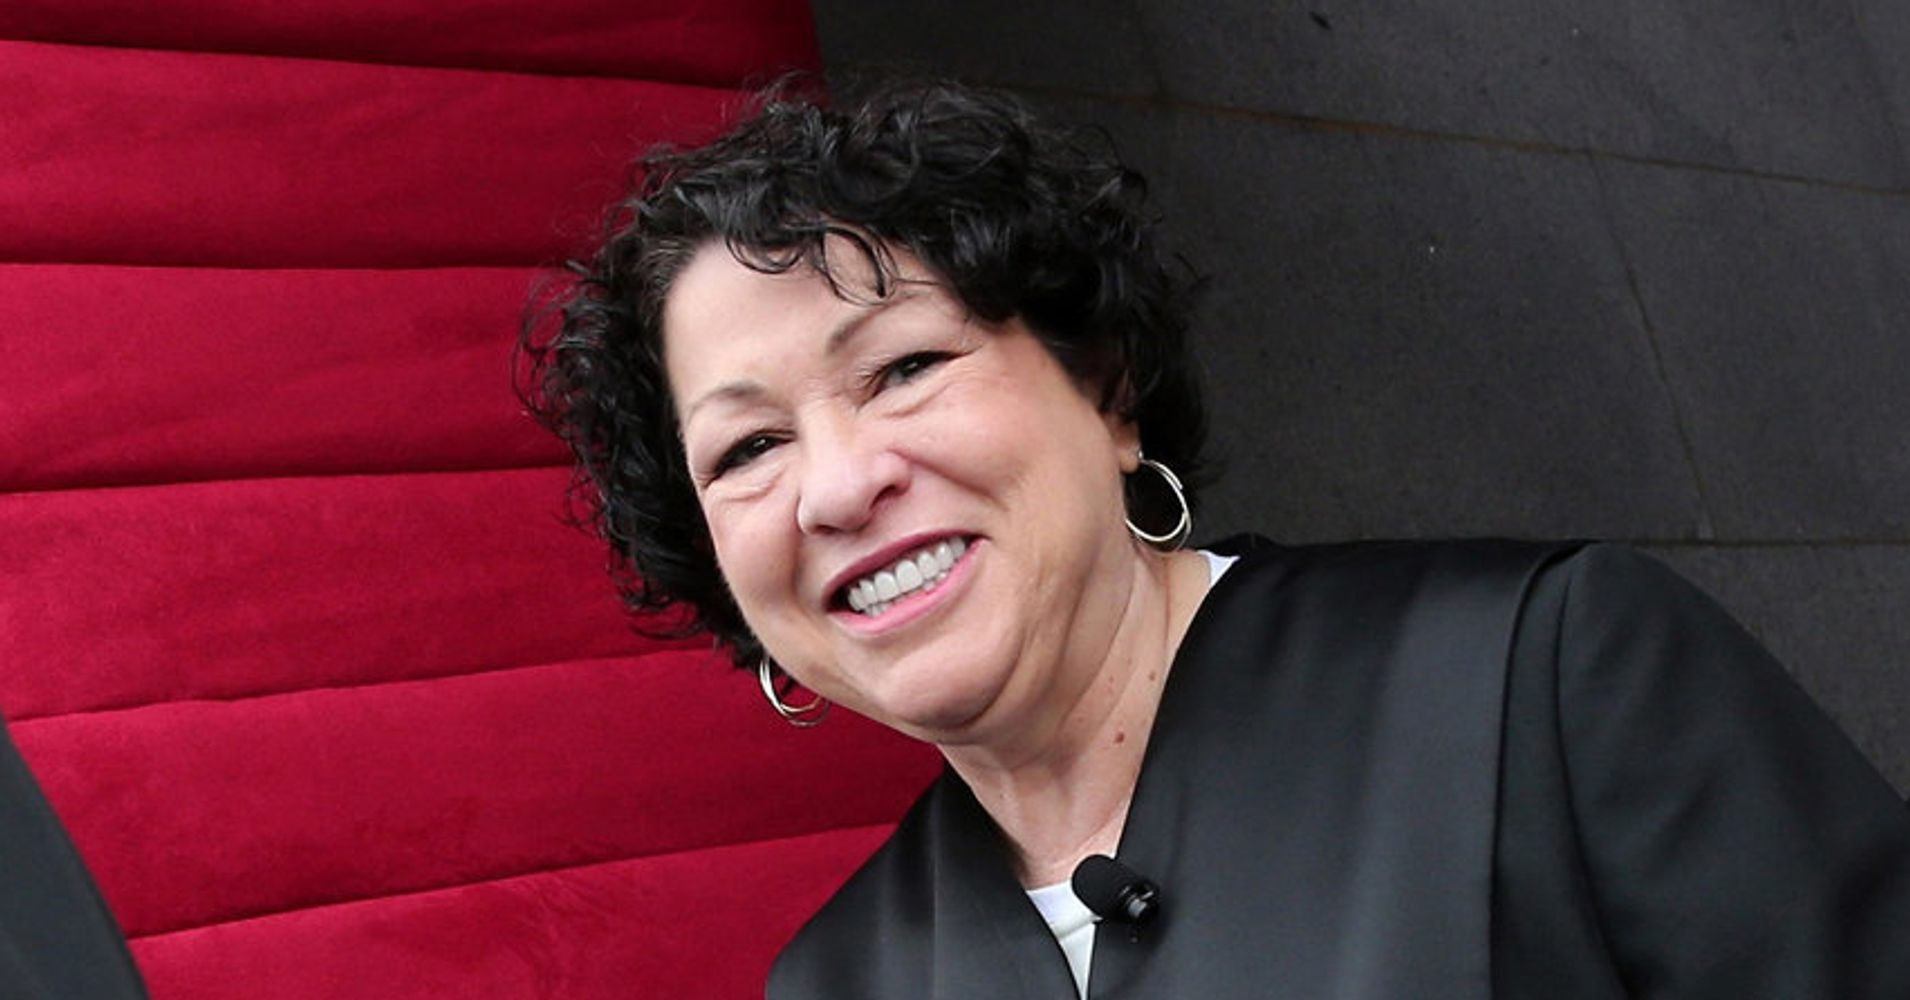 Justice sonia sotomayor on donald trump 39 s election 39 we for For how long do we elect the president